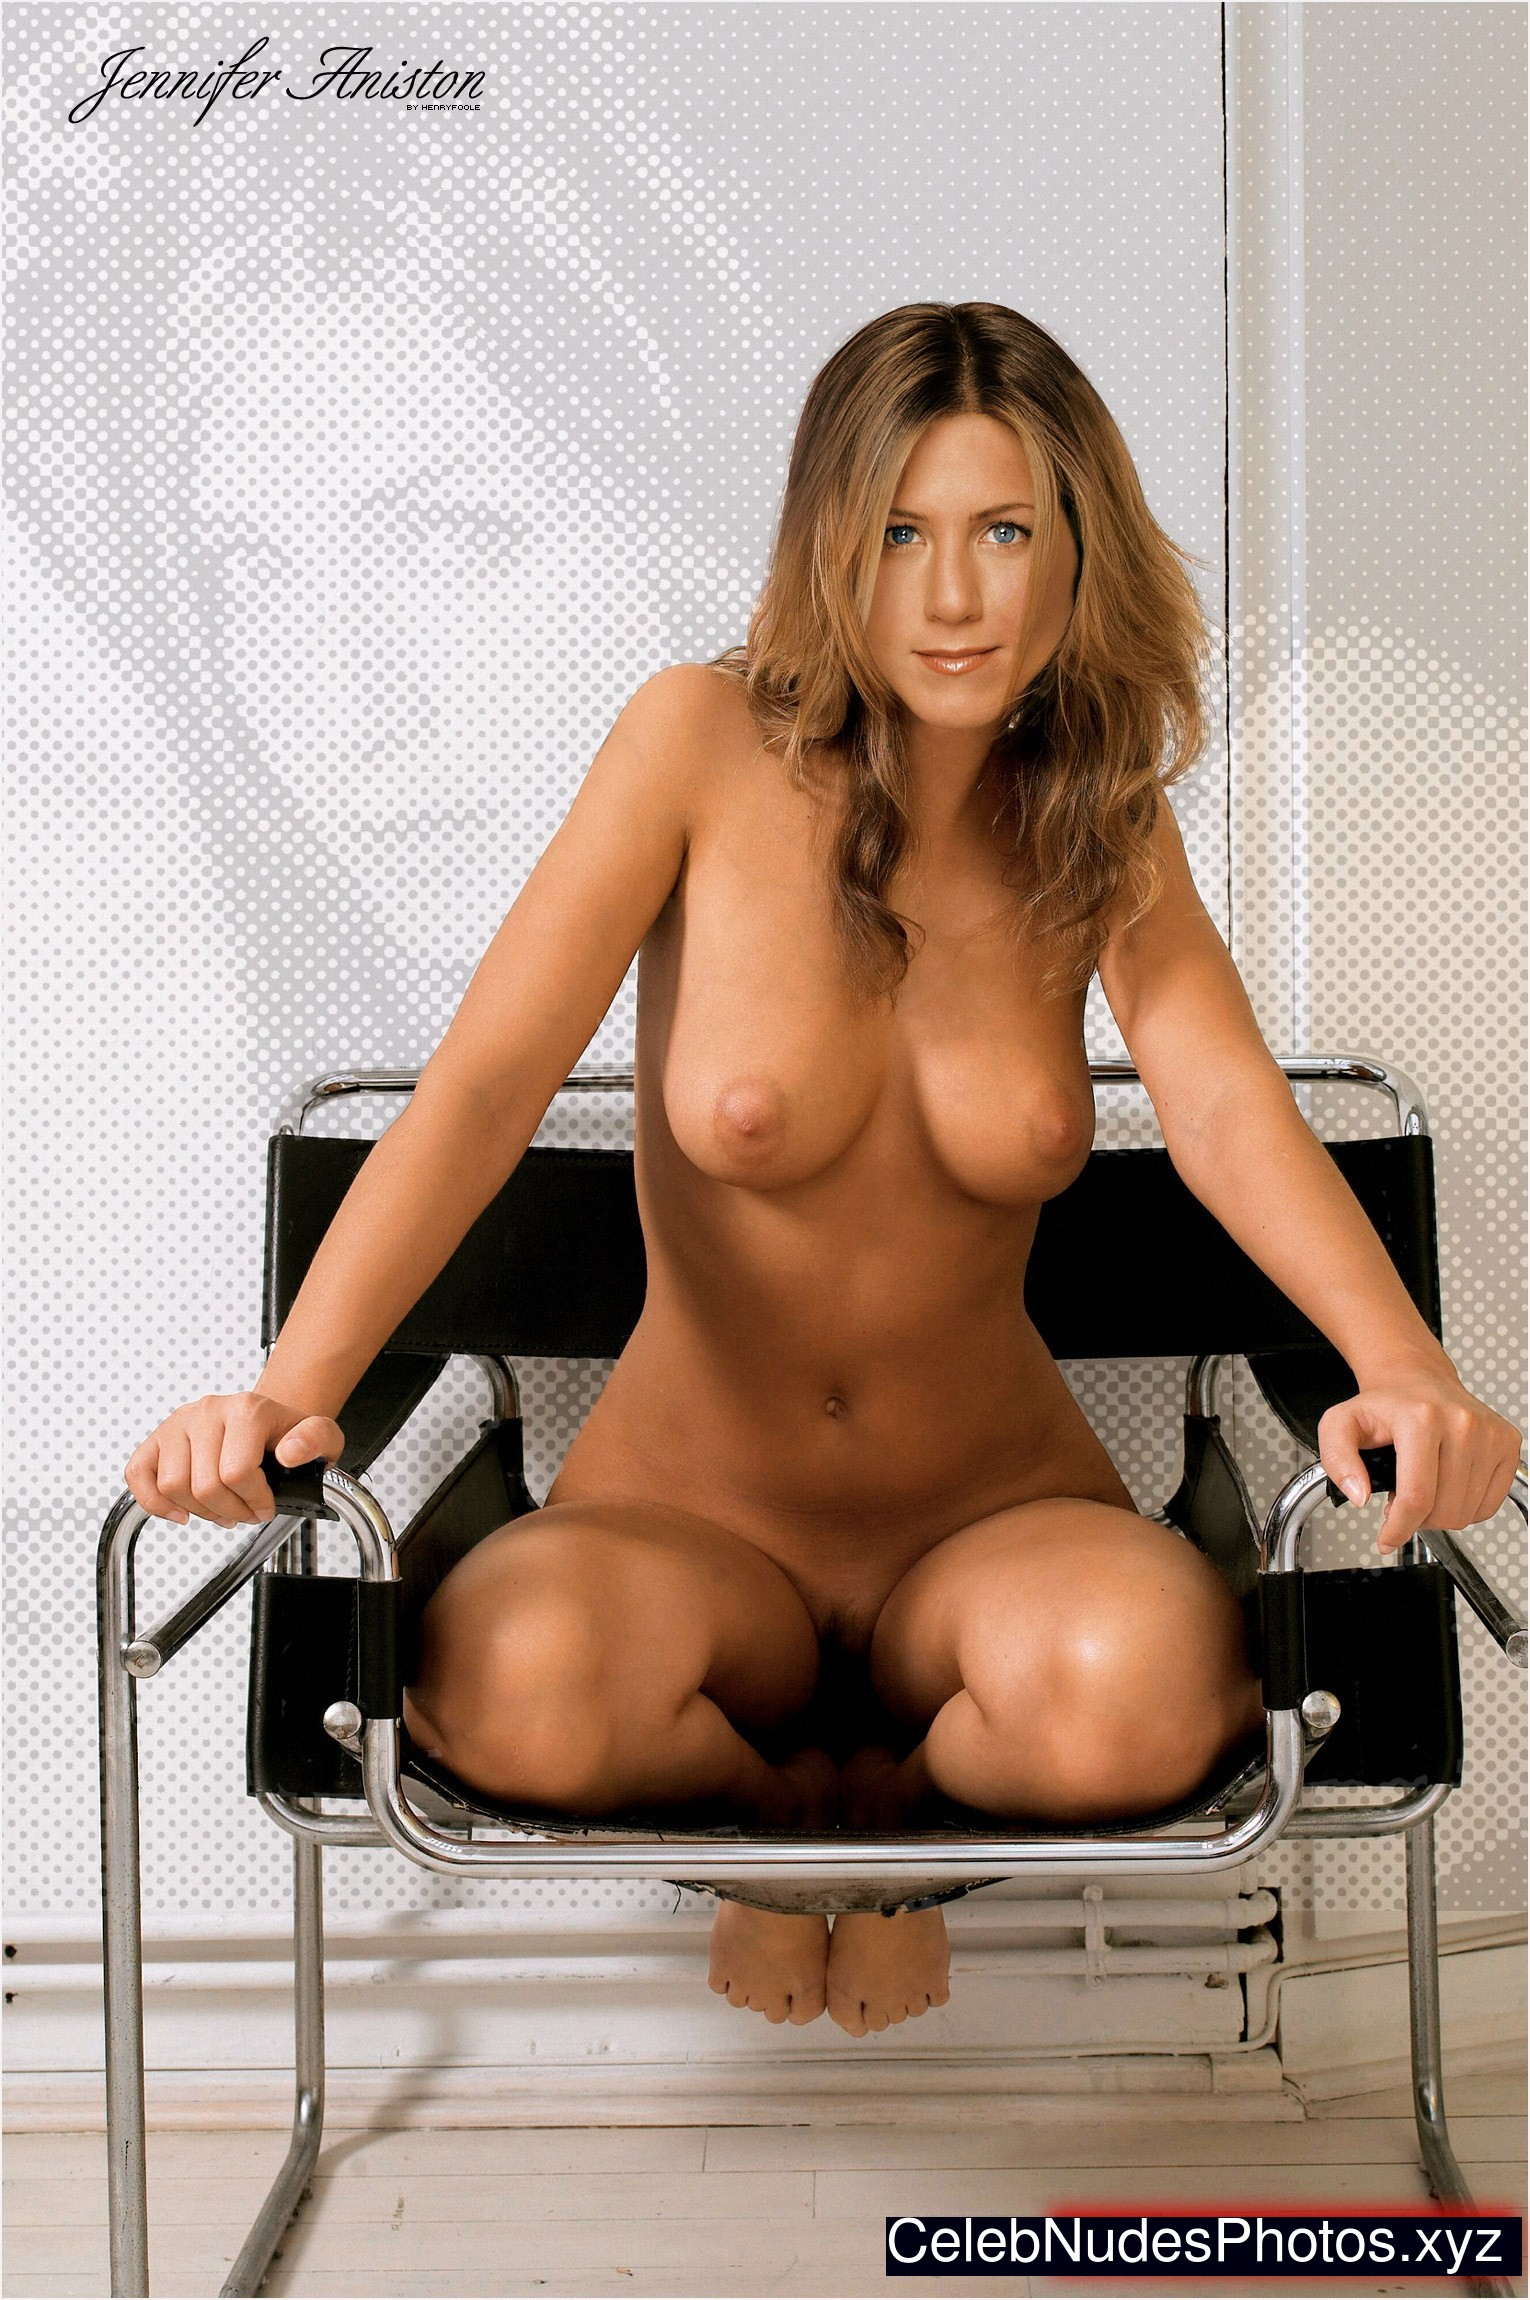 Not see Gallery jennifer aniston pussy pity, that